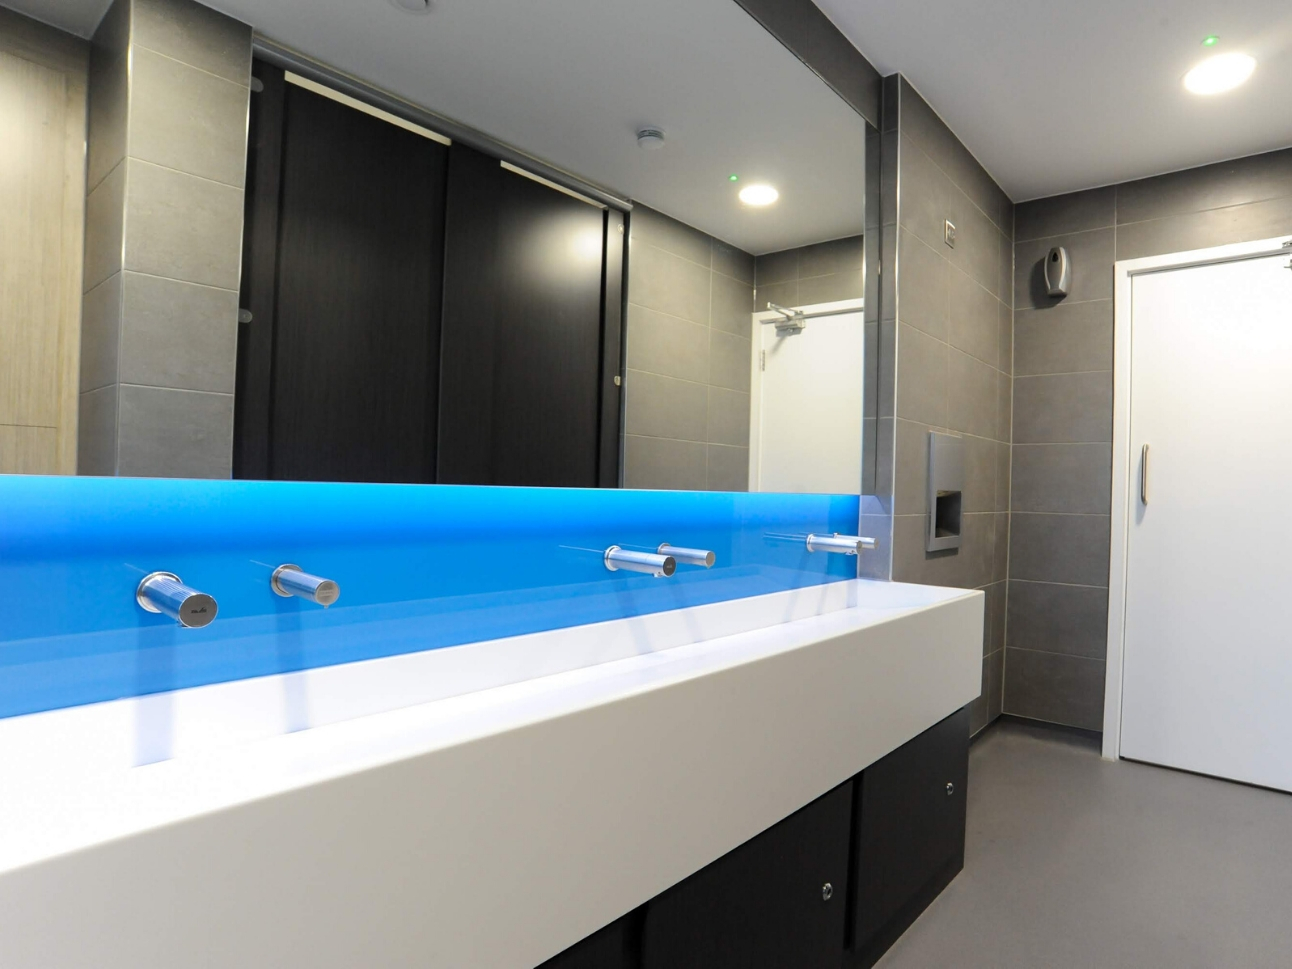 North London Charity   Case Study   Commercial Washroom